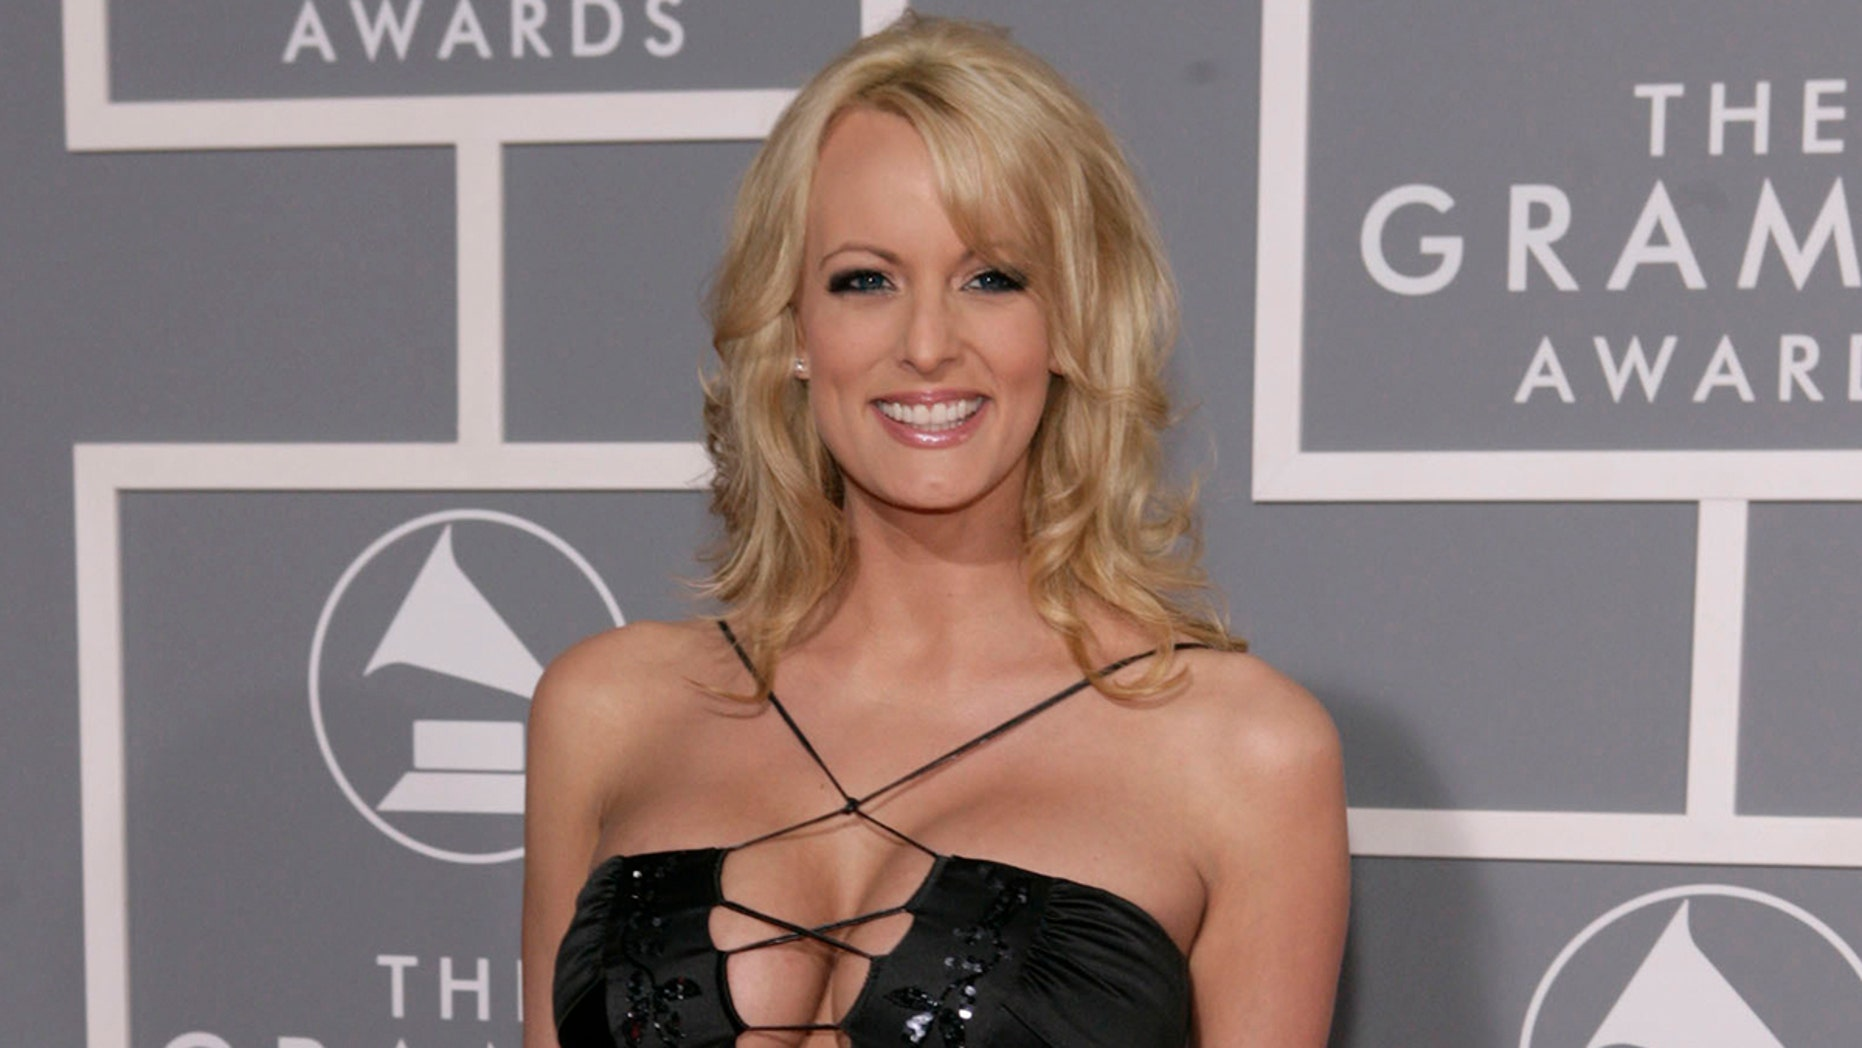 FILE - In this Feb. 11, 2007, file photo, Stormy Daniels arrives for the 49th Annual Grammy Awards in Los Angeles. Daniels who had previously alleged an extramarital affair with Donald Trump now says in a statement the affair never happened. A lawyer for porn actress Stormy Daniels confirmed his client's statement on Jan. 30, 2018. Daniels' real name is Stephanie Clifford.(AP Photo/Matt Sayles, File)